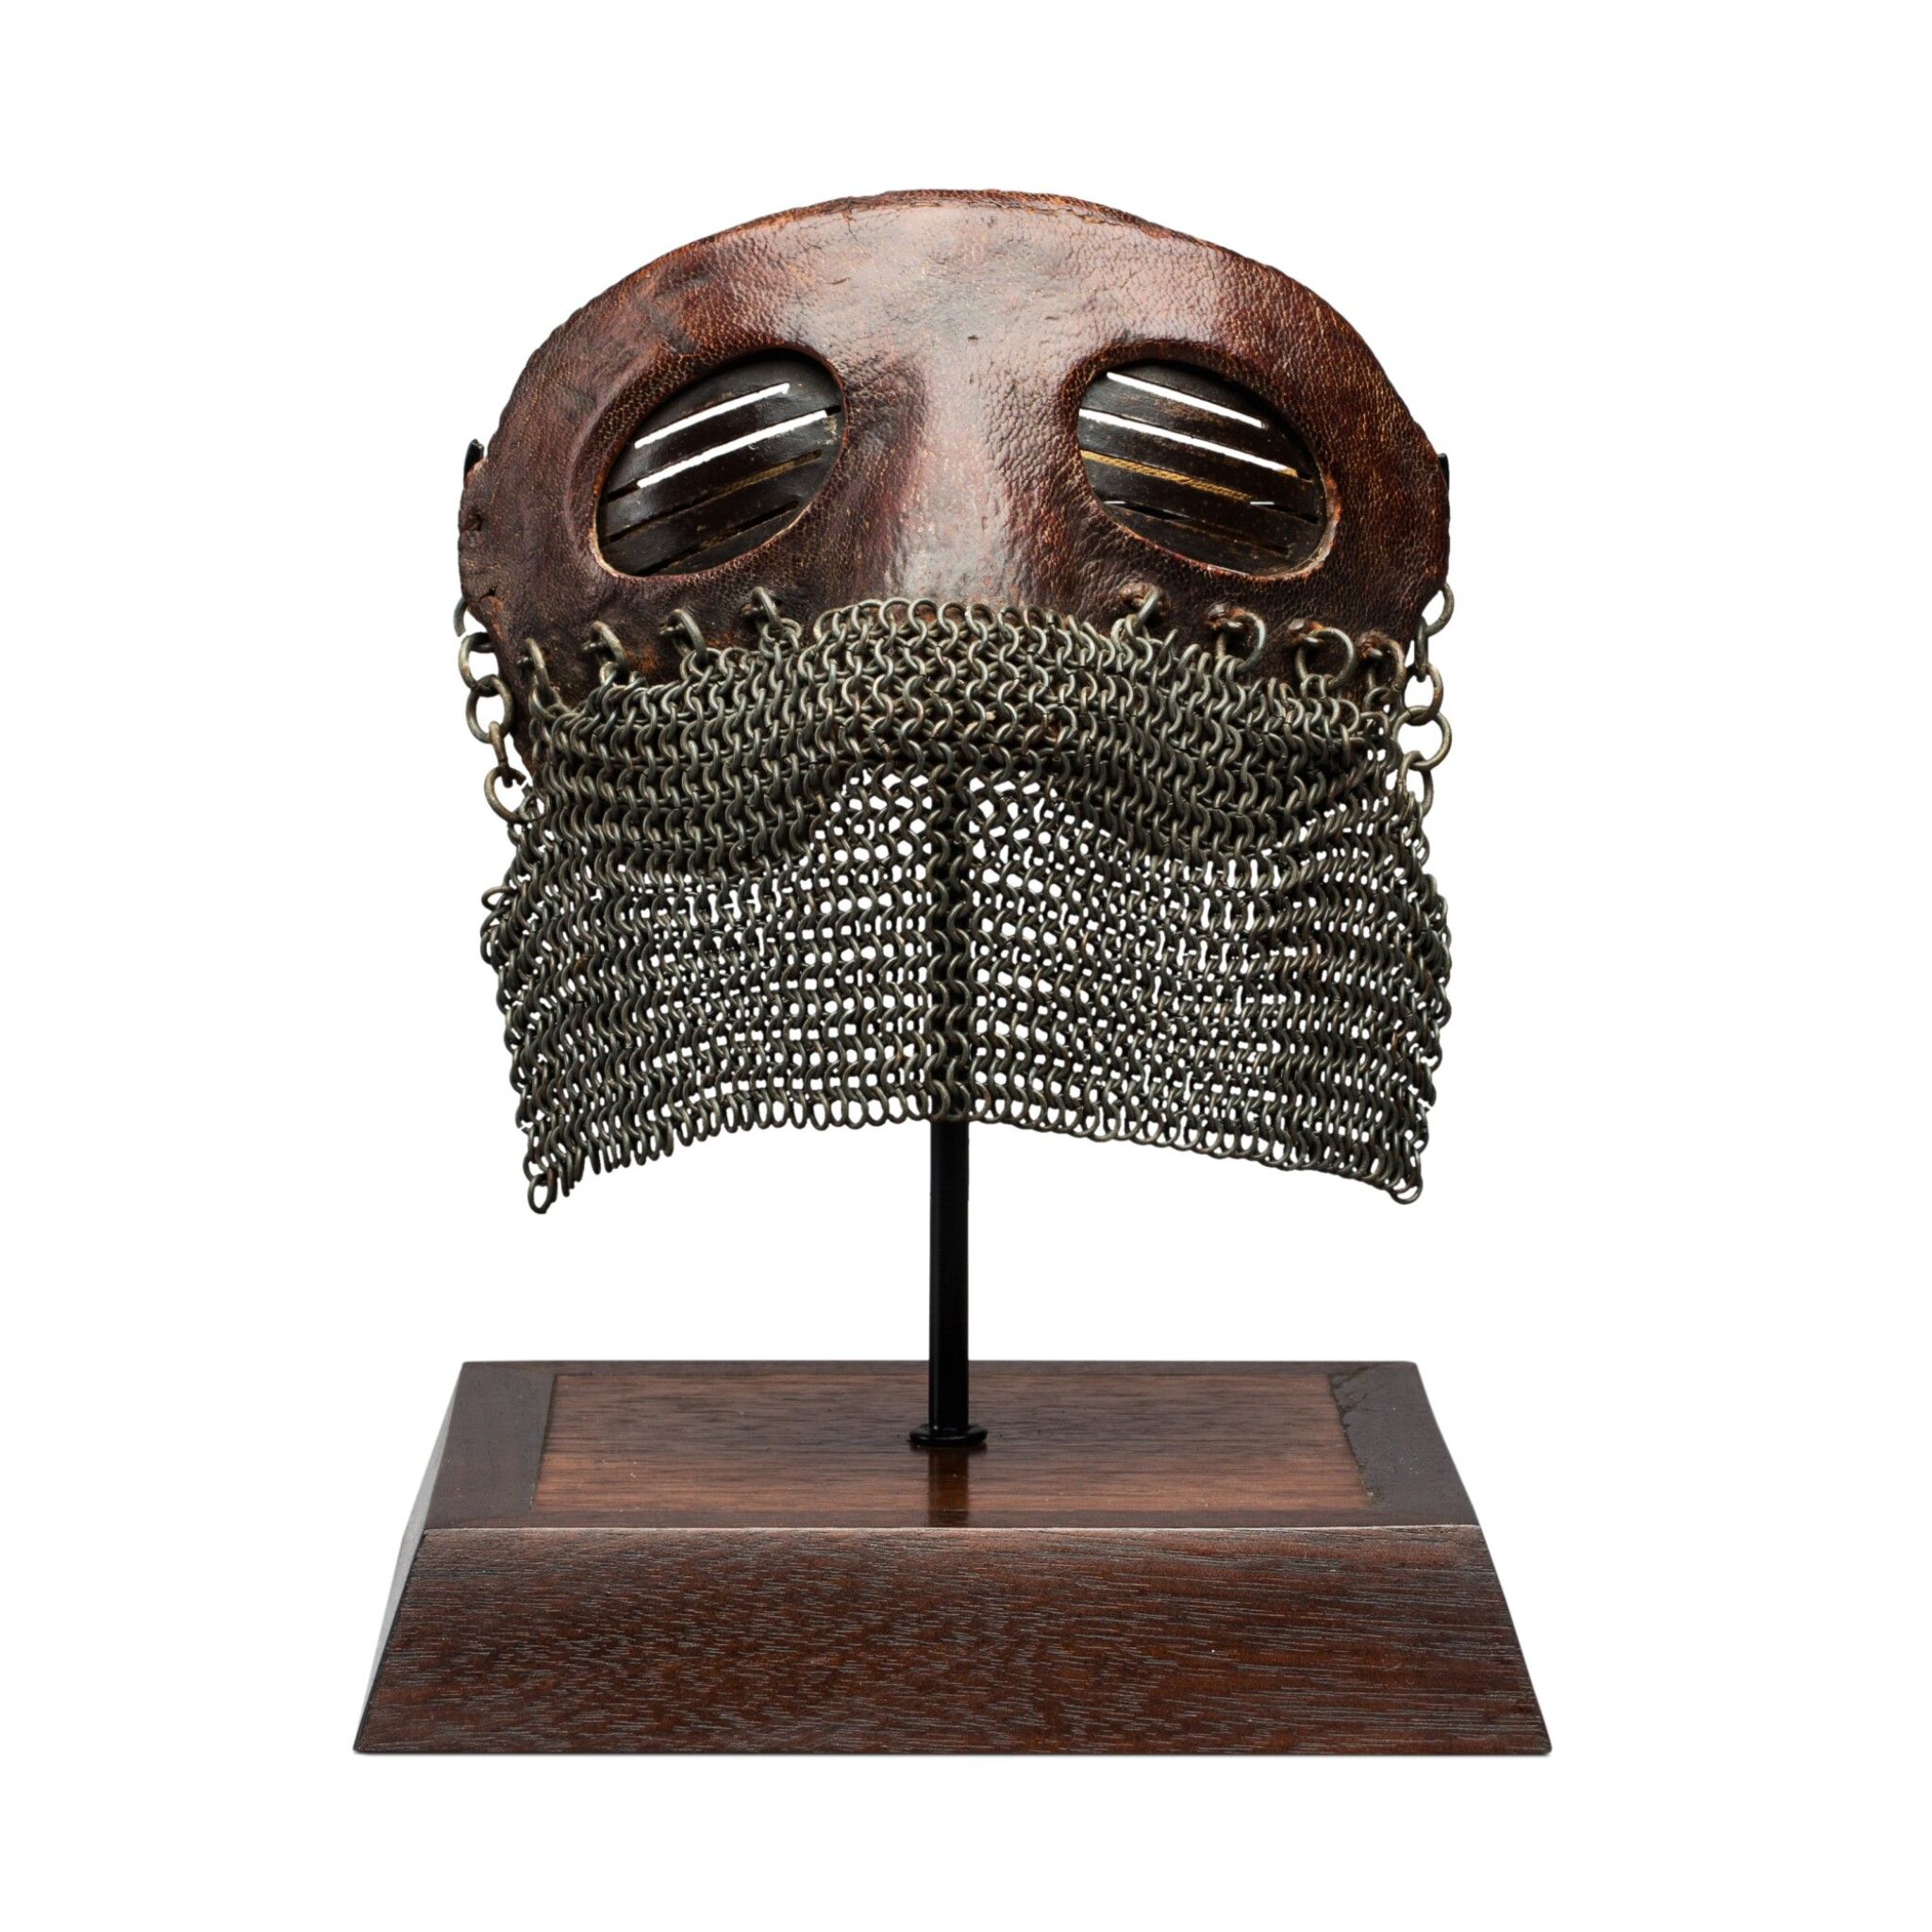 View full screen - View 1 of Lot 121. Ministry of Defence, 1914-1918 | British First World War Anti-Splinter Tank Mask.